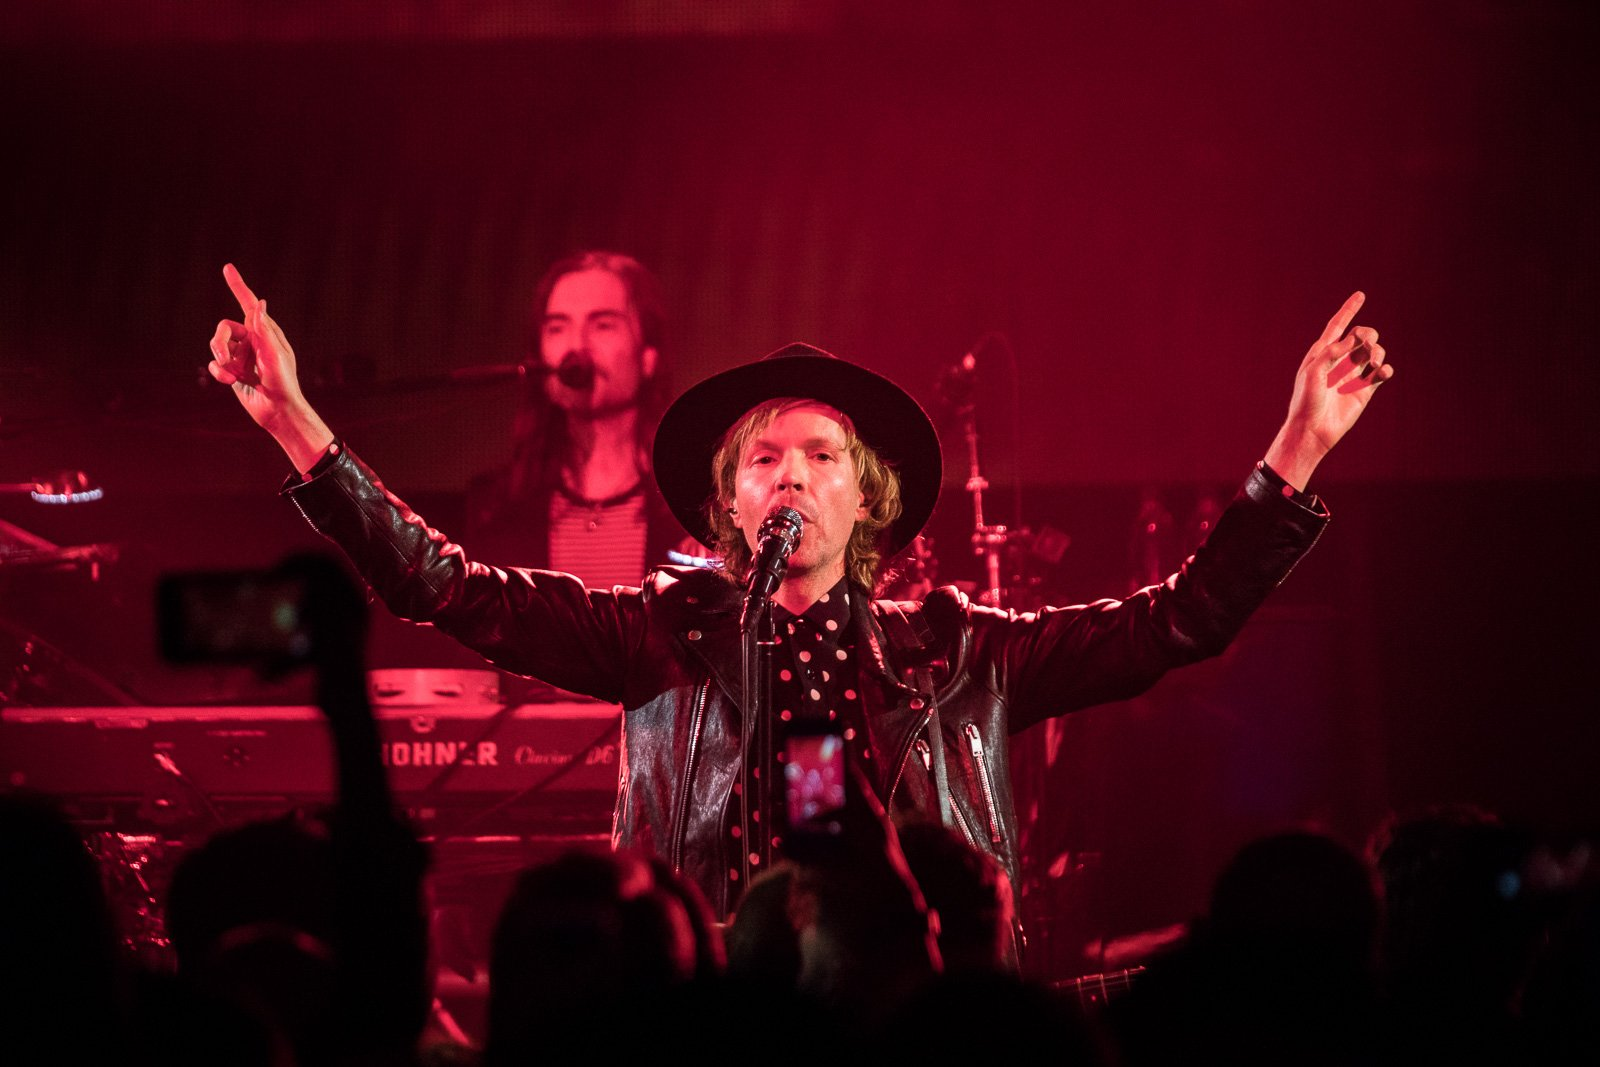 Beck brought the hits at intimate Spring Studios show (pics, video setlist) https://t.co/8WT1BPIMD3 https://t.co/pbUMmQobvX